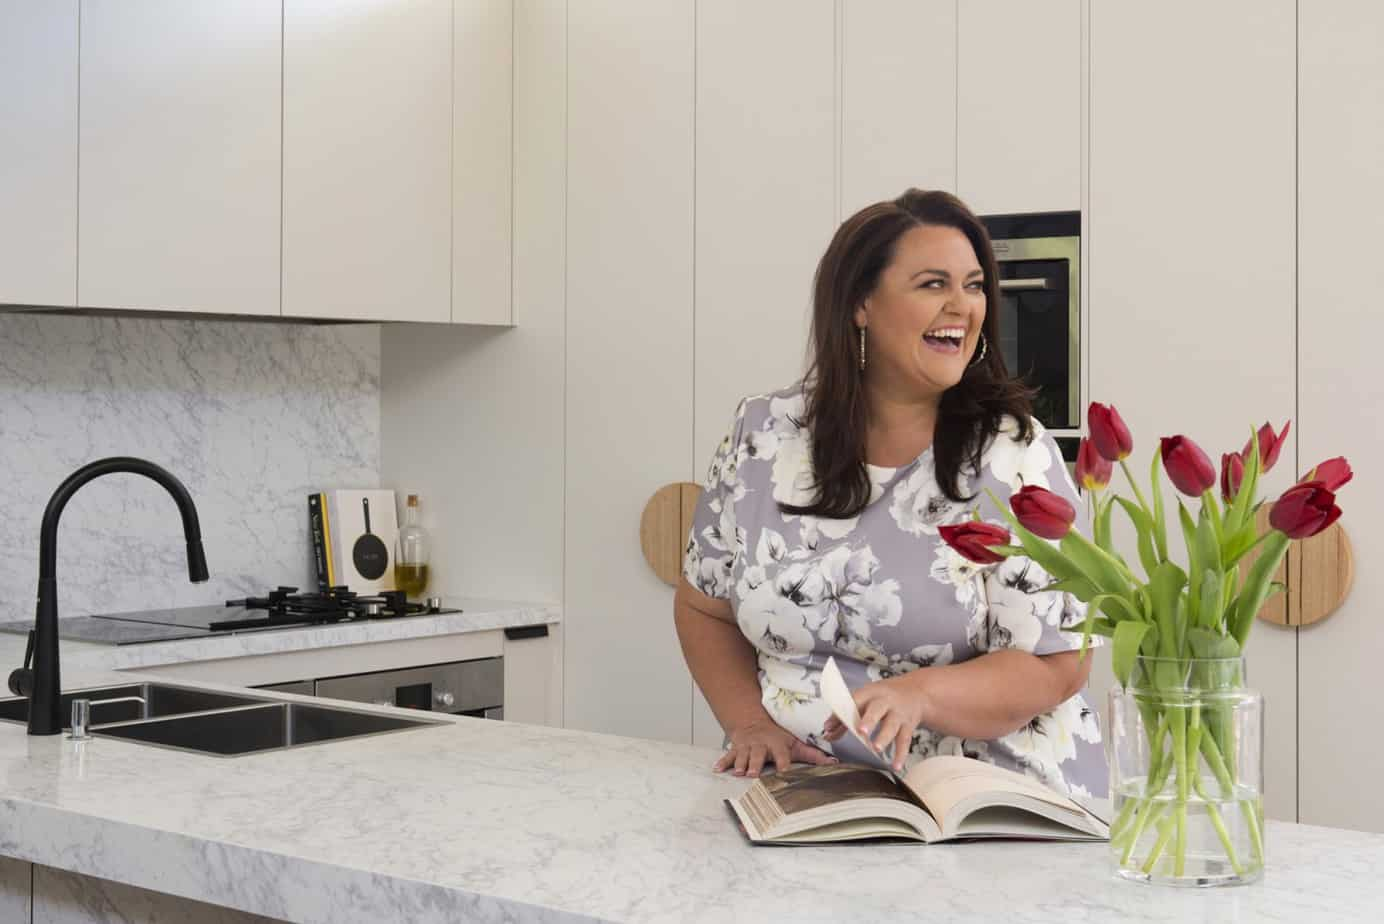 Celebrity Chrissie Swan Shares Her Kitchen Renovation Tips